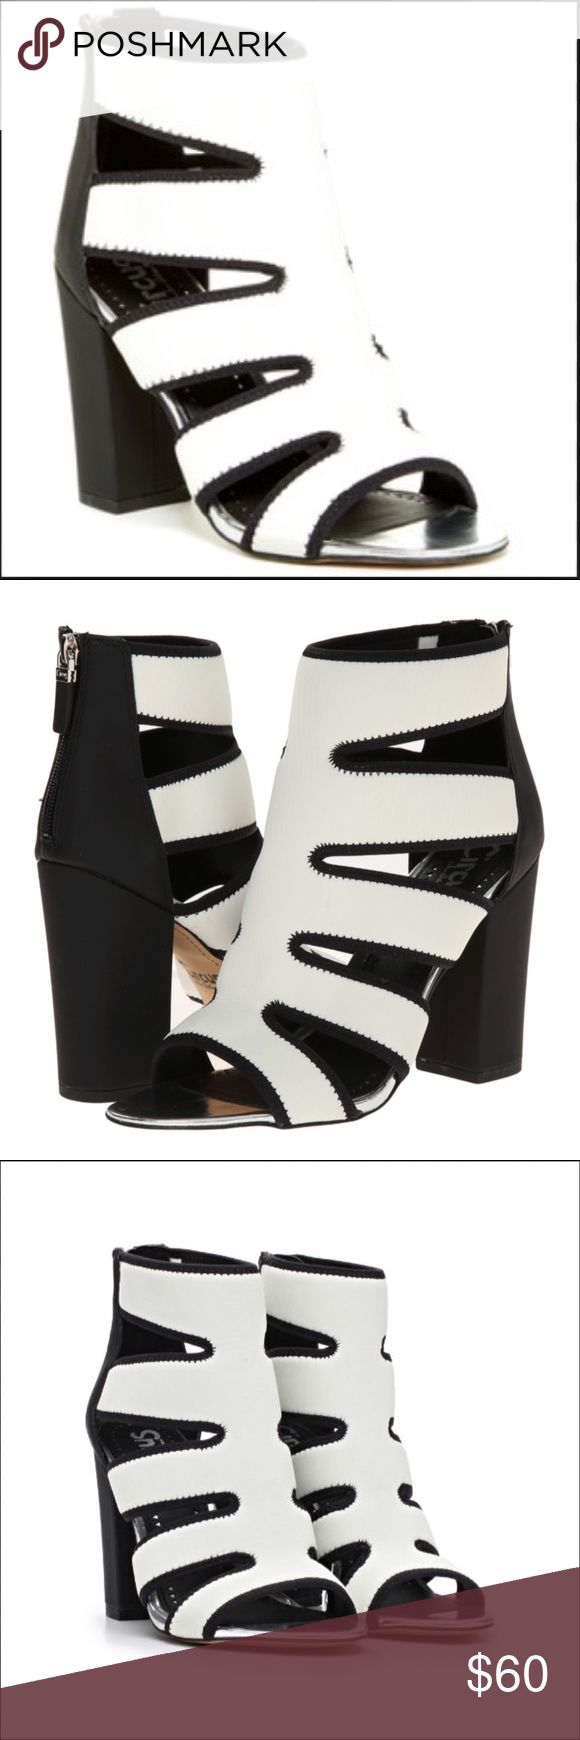 """COMING SOON! Circus by SAM EDELMAN Nina Heels NIB COMING SOON! These beautiful Circus by SAM EDELMAN heels are NIB-unused, unworn, with the original box.  Black and white, size 8.  Heel approximately 4"""", shaft measures approximately 5.5"""" from arch, boot opening measures approximately 9.35"""" around.  Scuba inspired cut-out upper with zipper closure at the heel. Fits true to size.  Retail: $95. Get these amazing heels from my closet at a deep discount! Shoes Heels"""